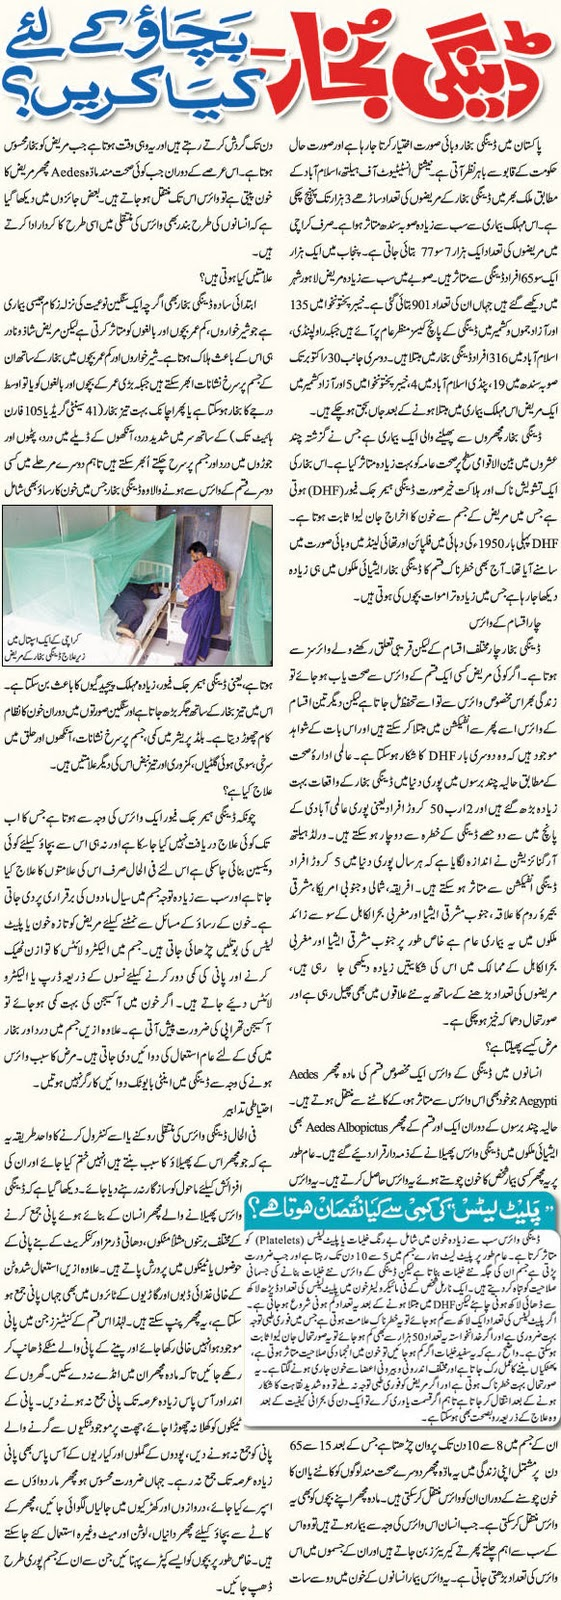 Dengue fever urdu tips, safety from dengue. Read in Urdu about dengue